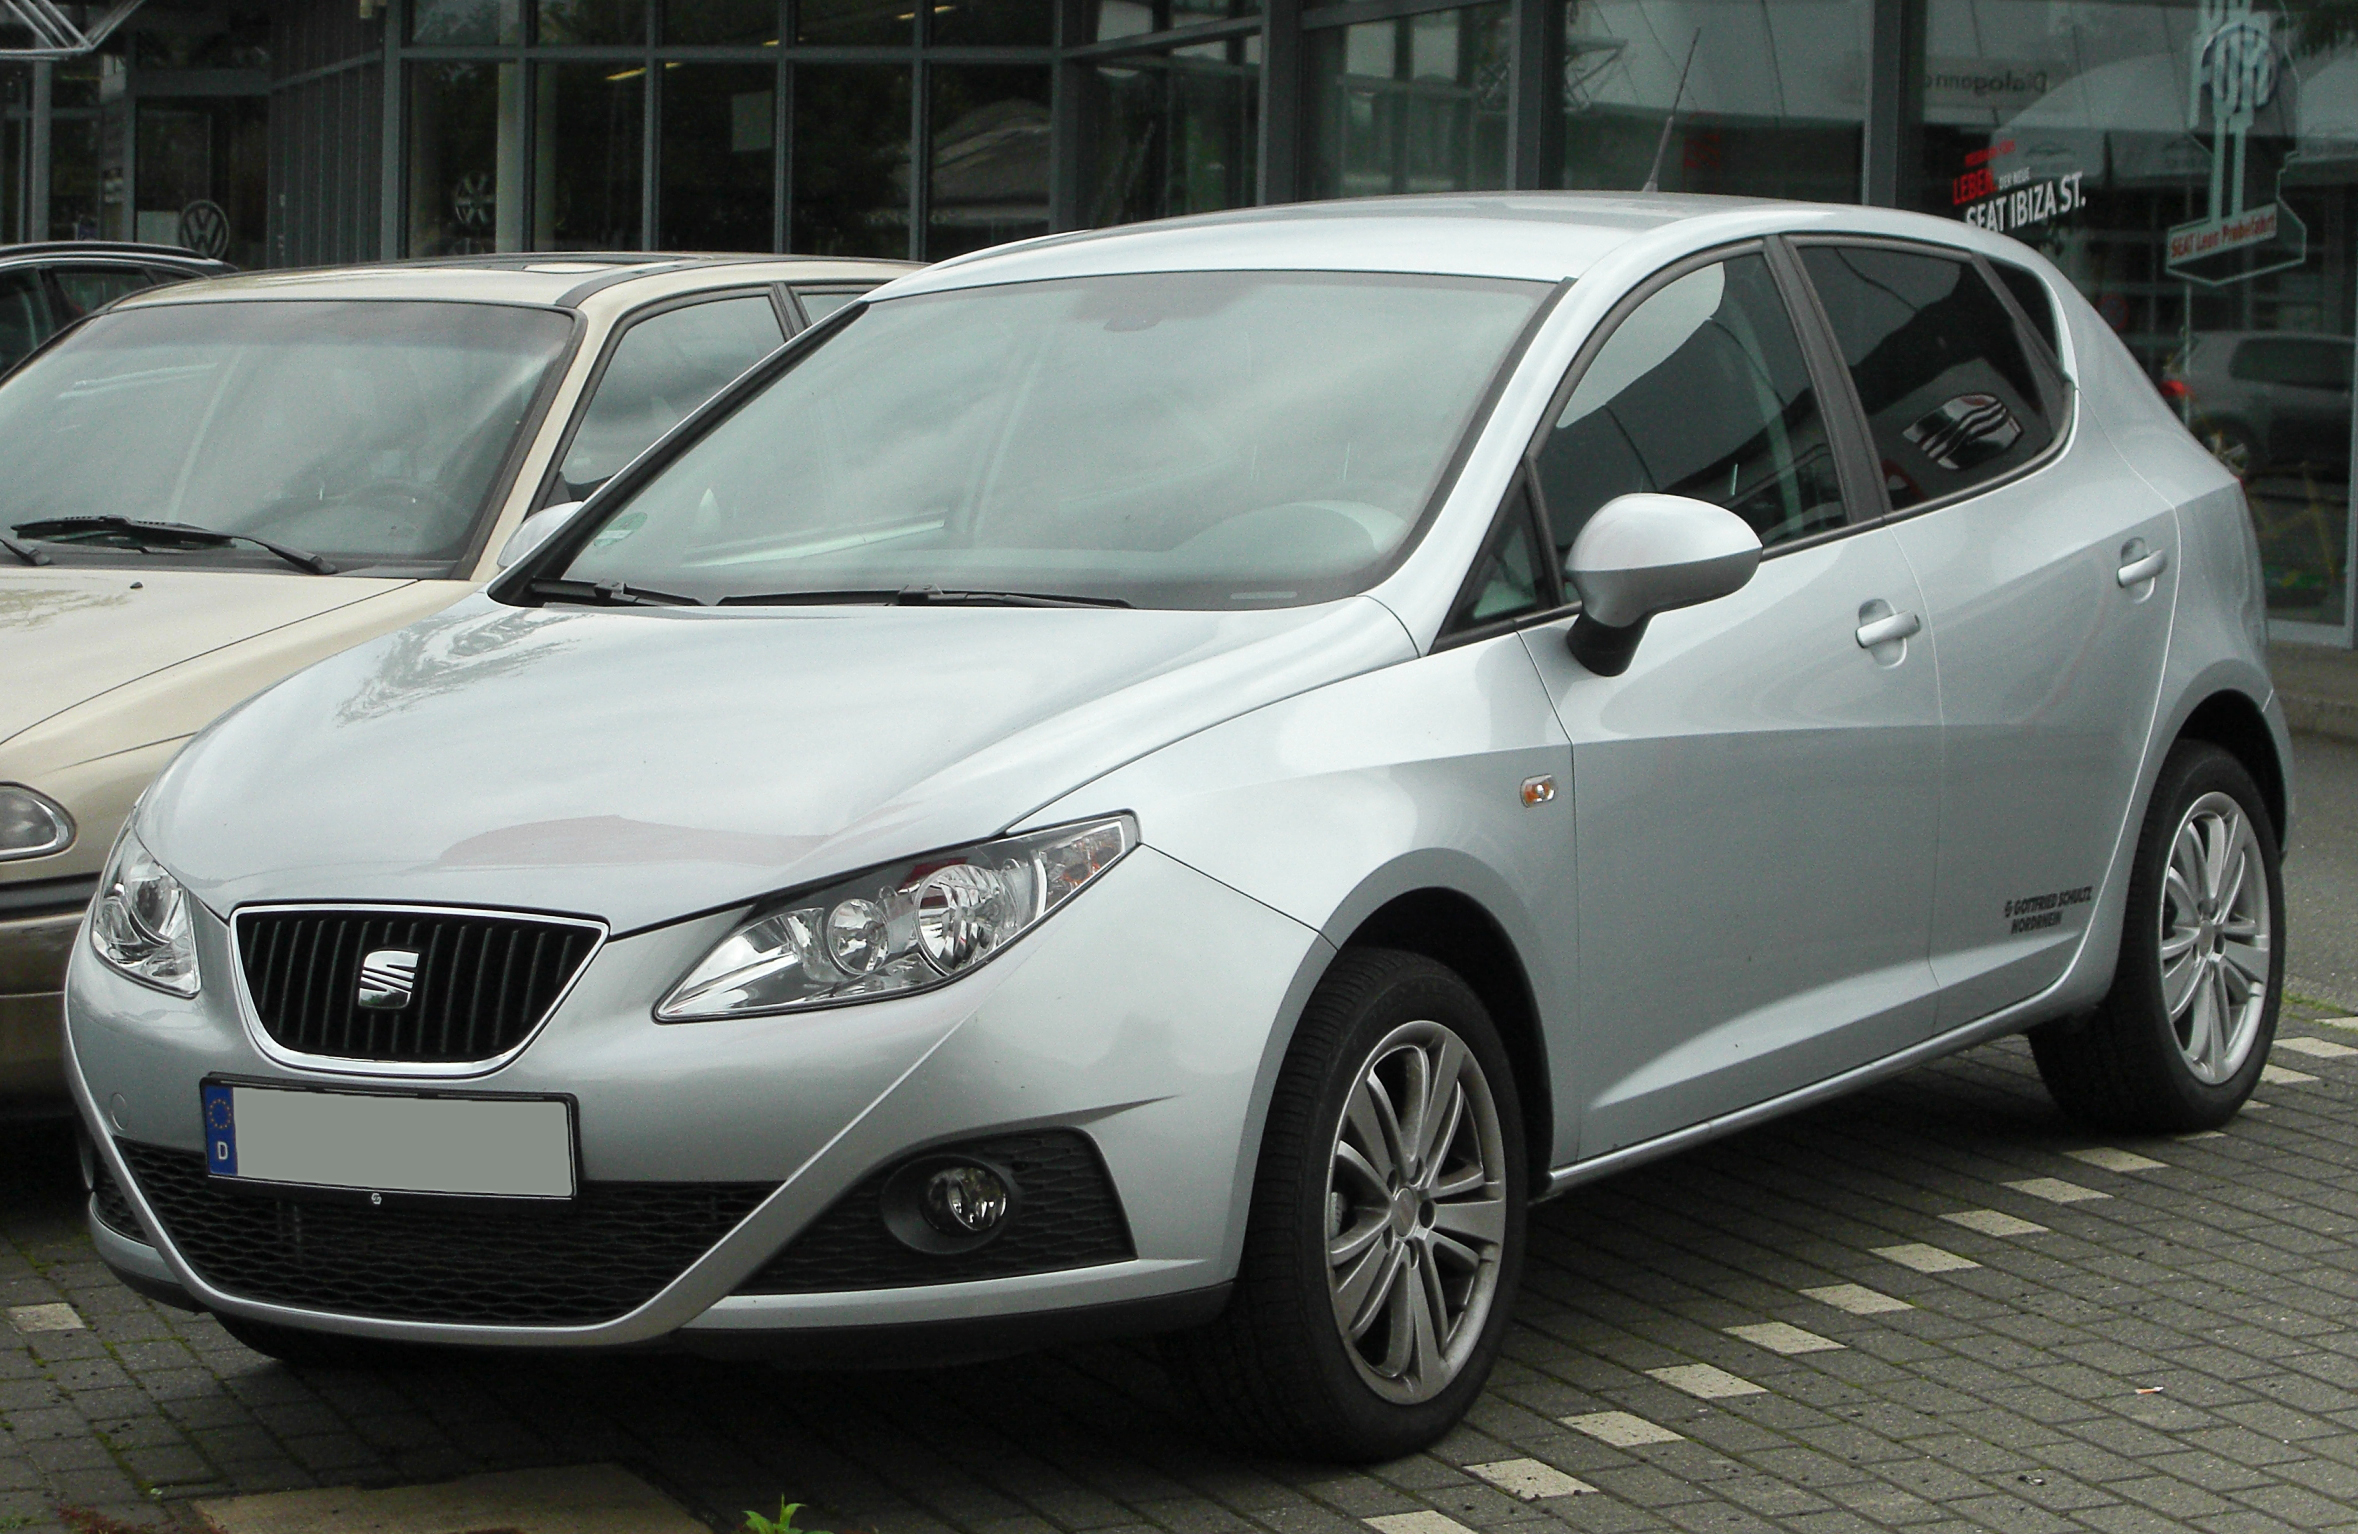 2007 seat ibiza 3 6l1 pictures information and specs. Black Bedroom Furniture Sets. Home Design Ideas